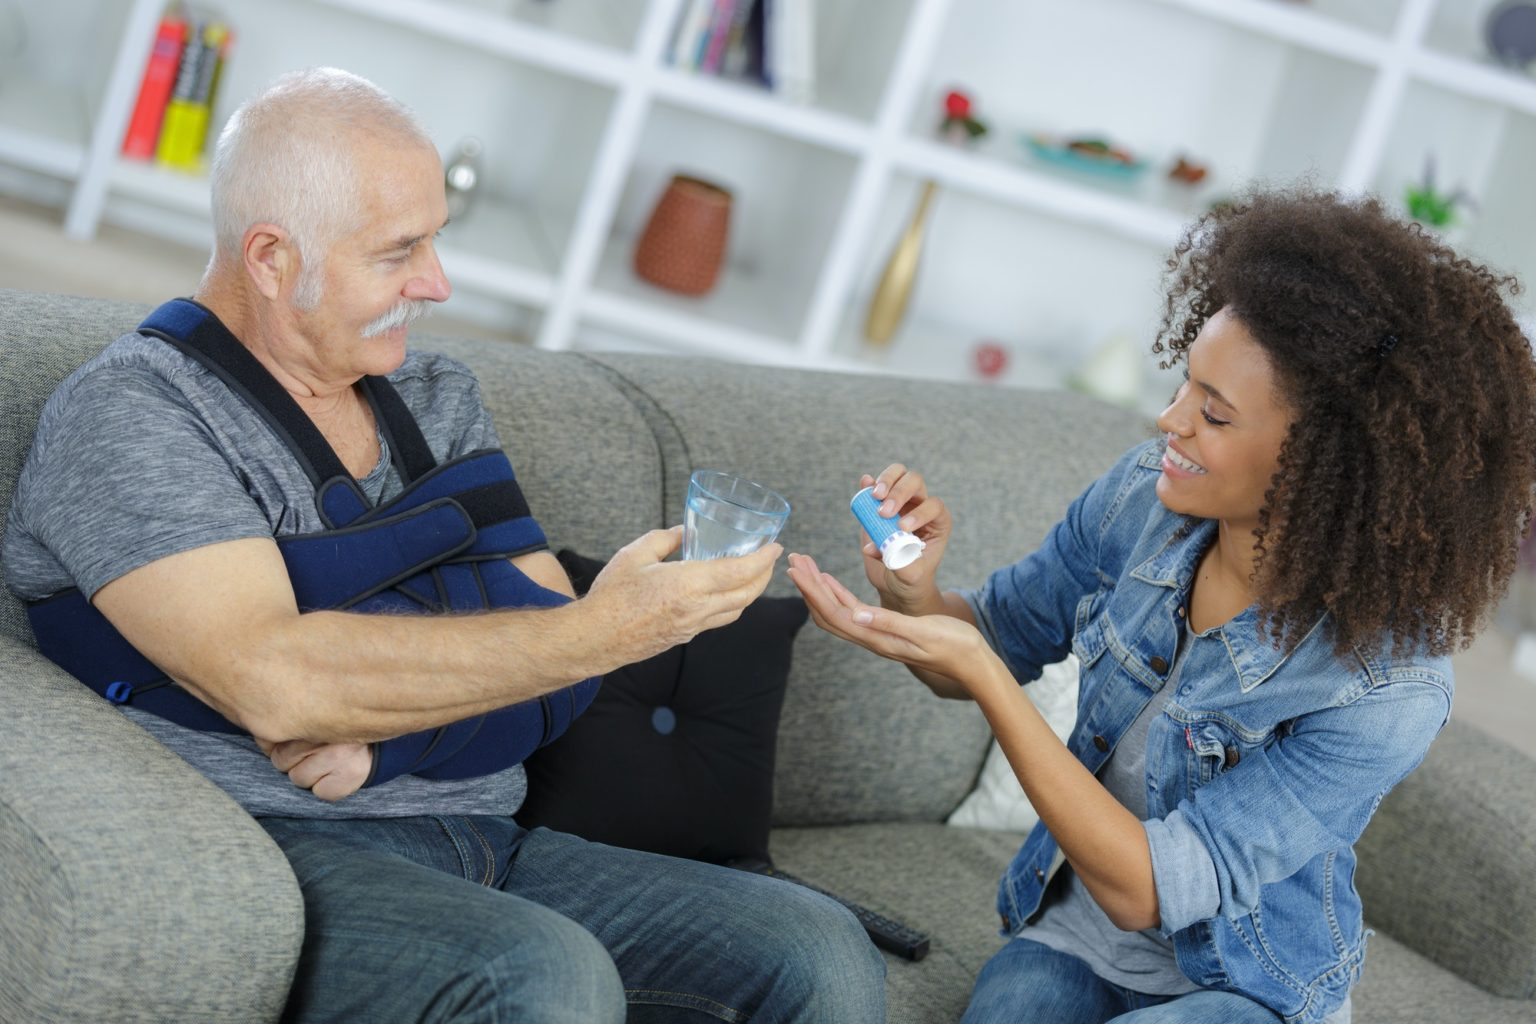 Lady preparing medication for senior man with his arm in a sling